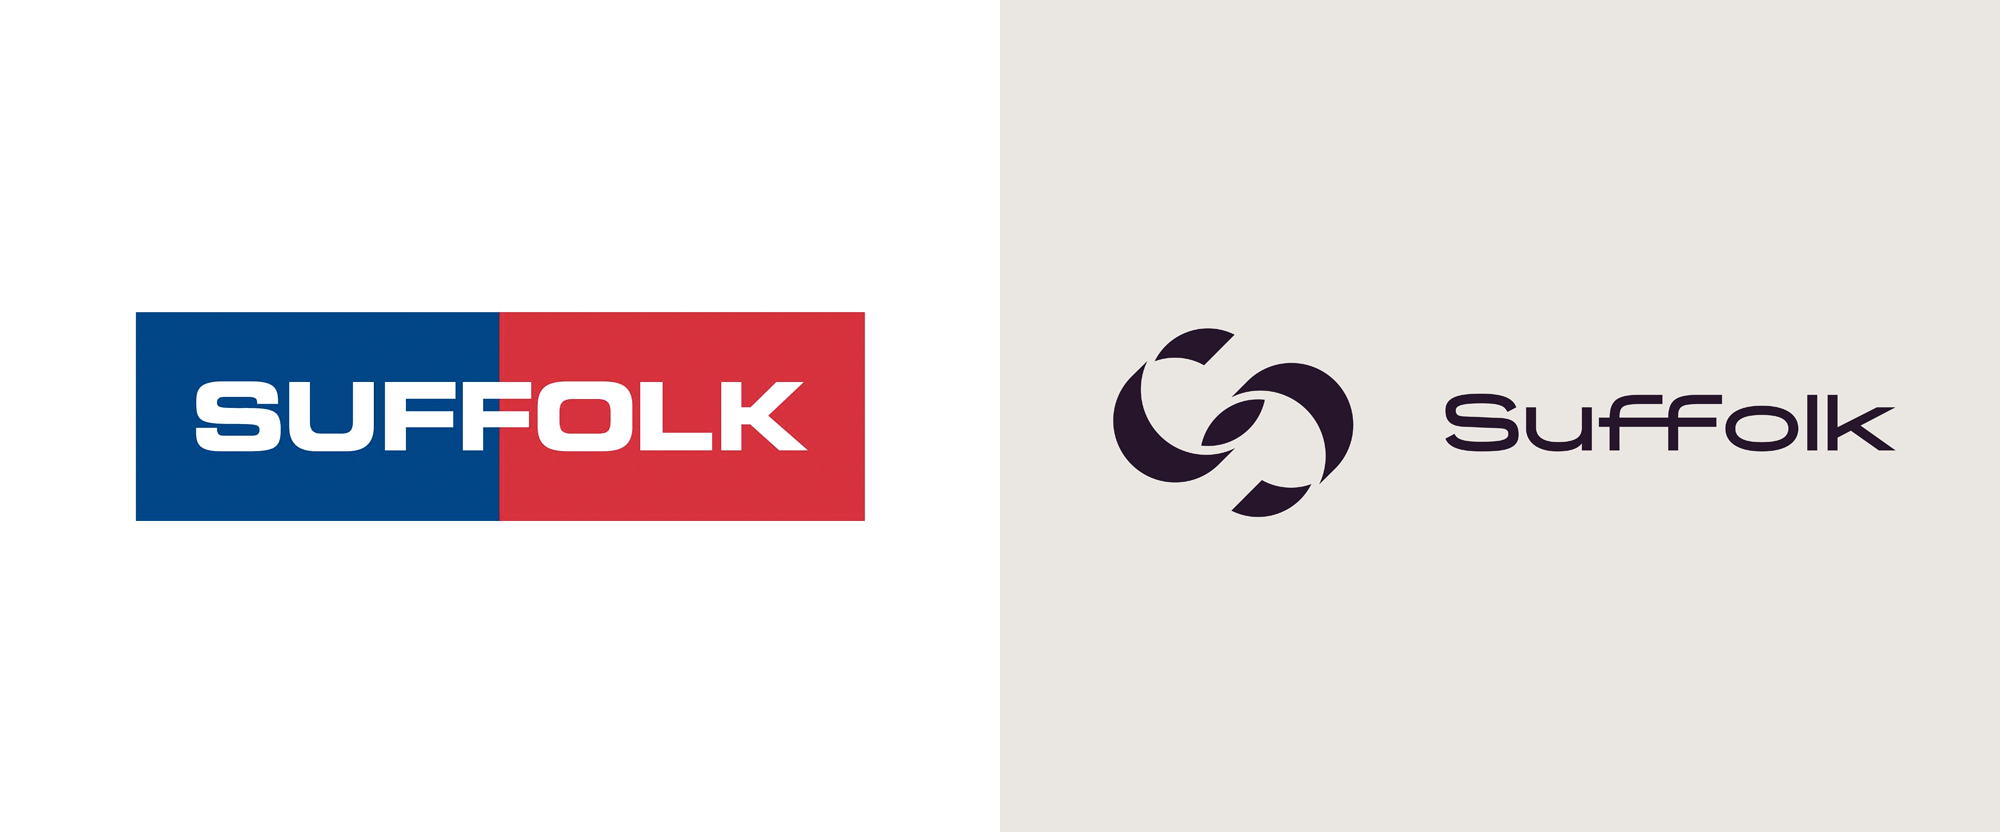 New Logo and Identity for Suffolk by MullenLowe